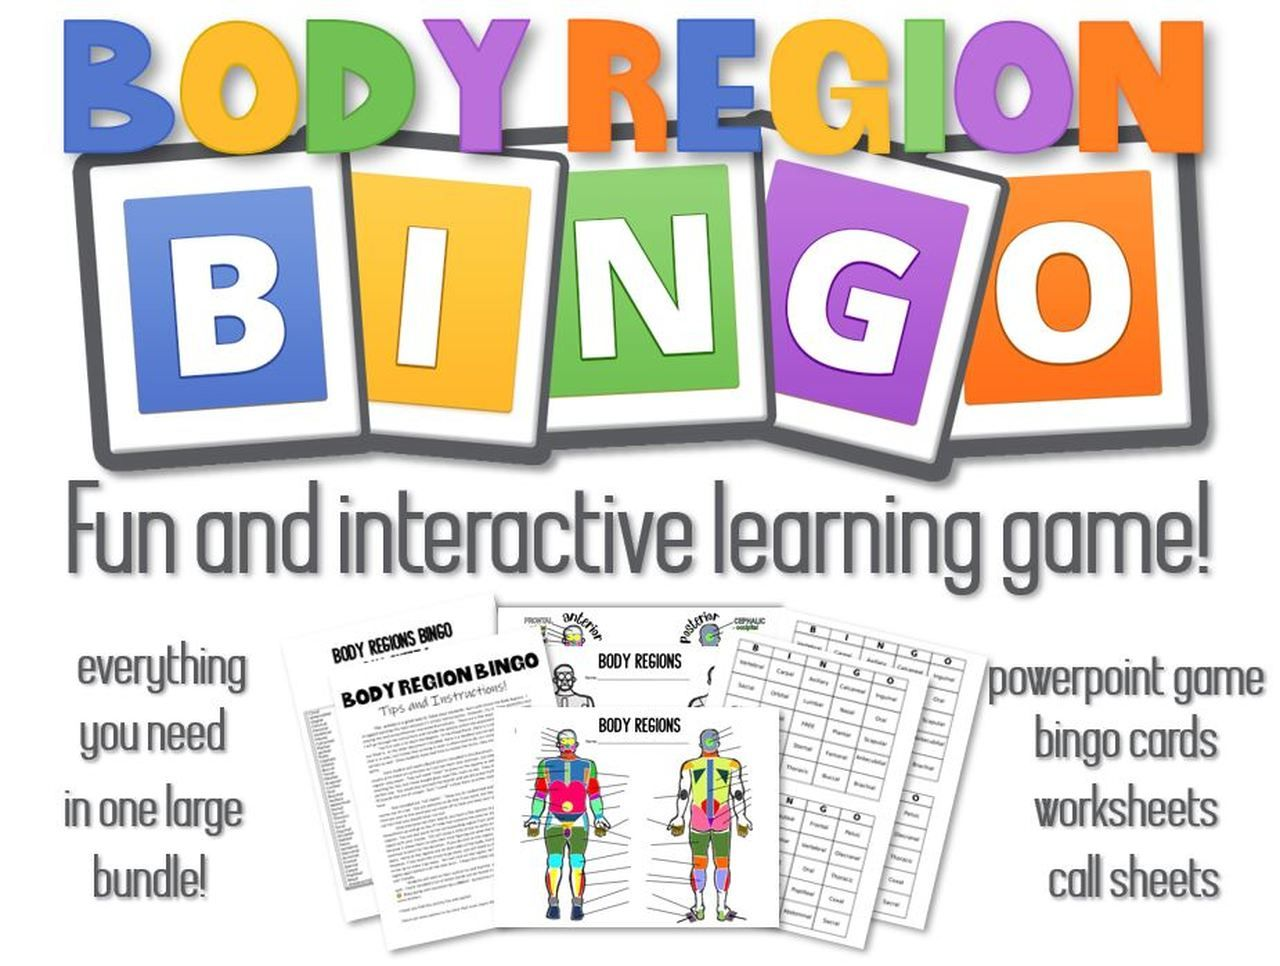 Body Region Bingo Powerpoint Game Bingo Card Call